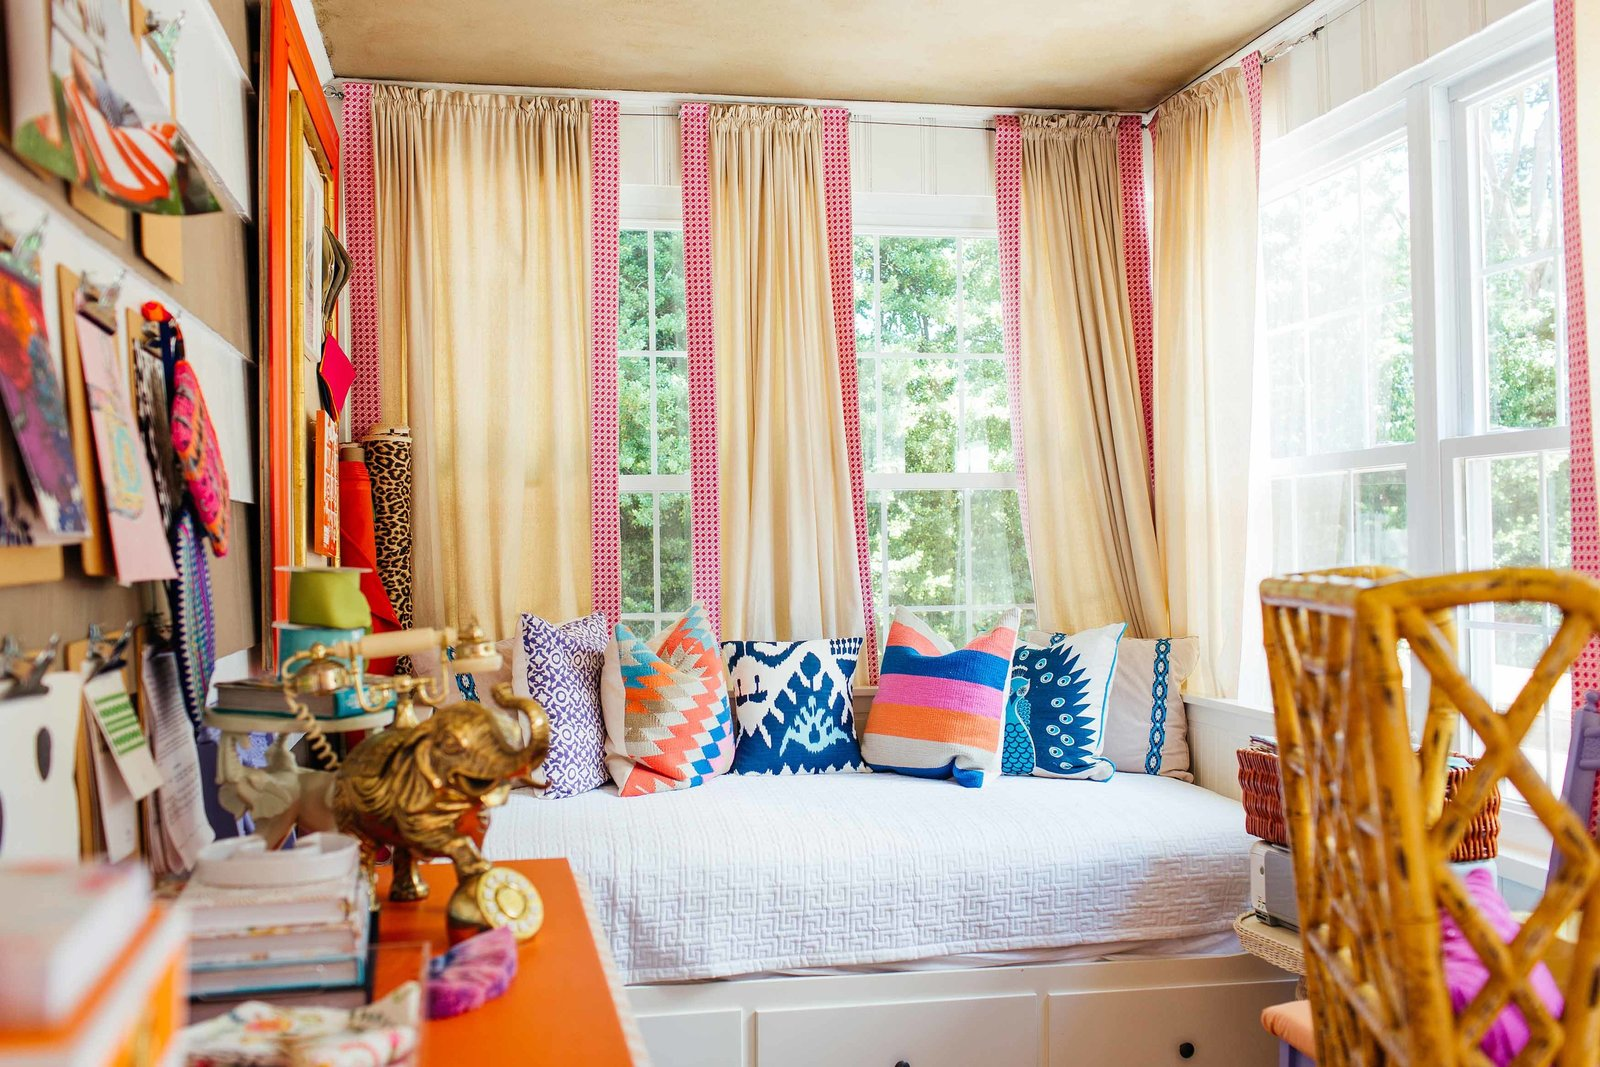 A day bed in a colorful interior design studio.